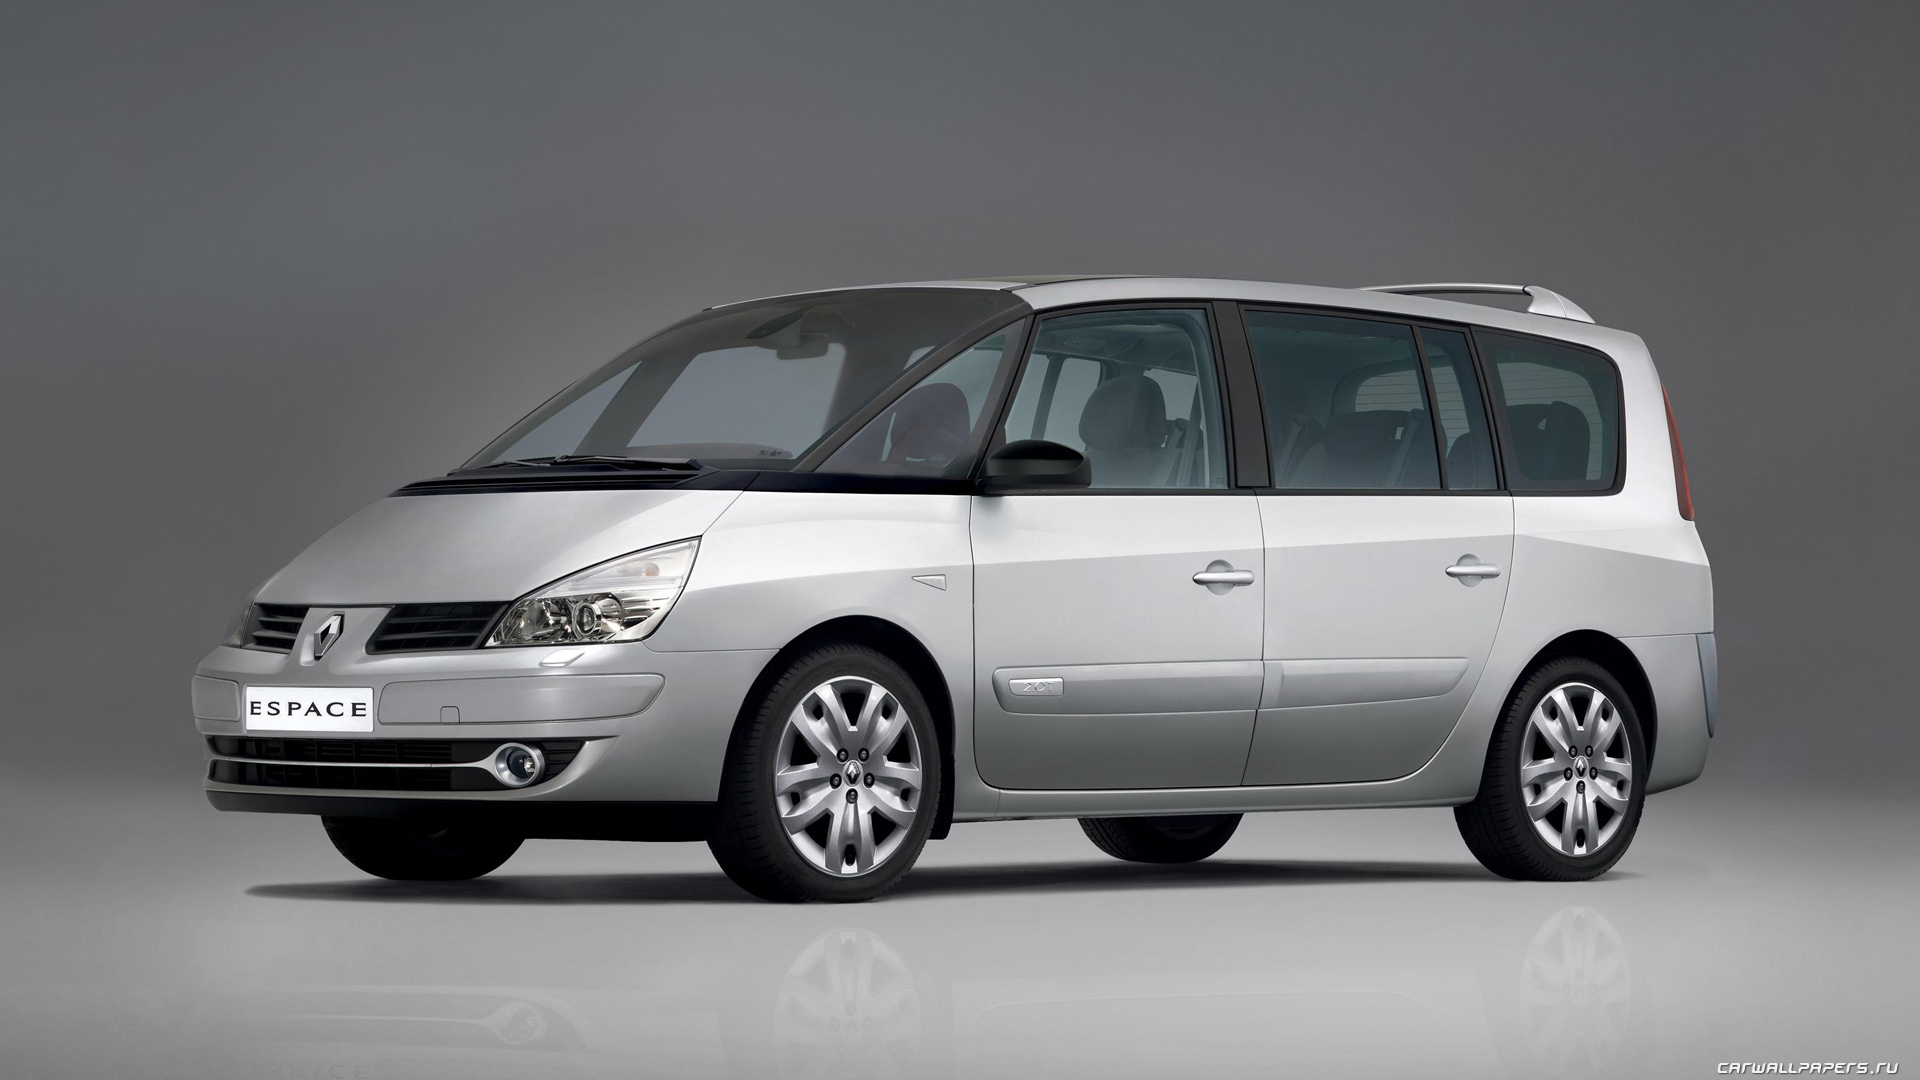 2008 renault espace photos informations articles. Black Bedroom Furniture Sets. Home Design Ideas